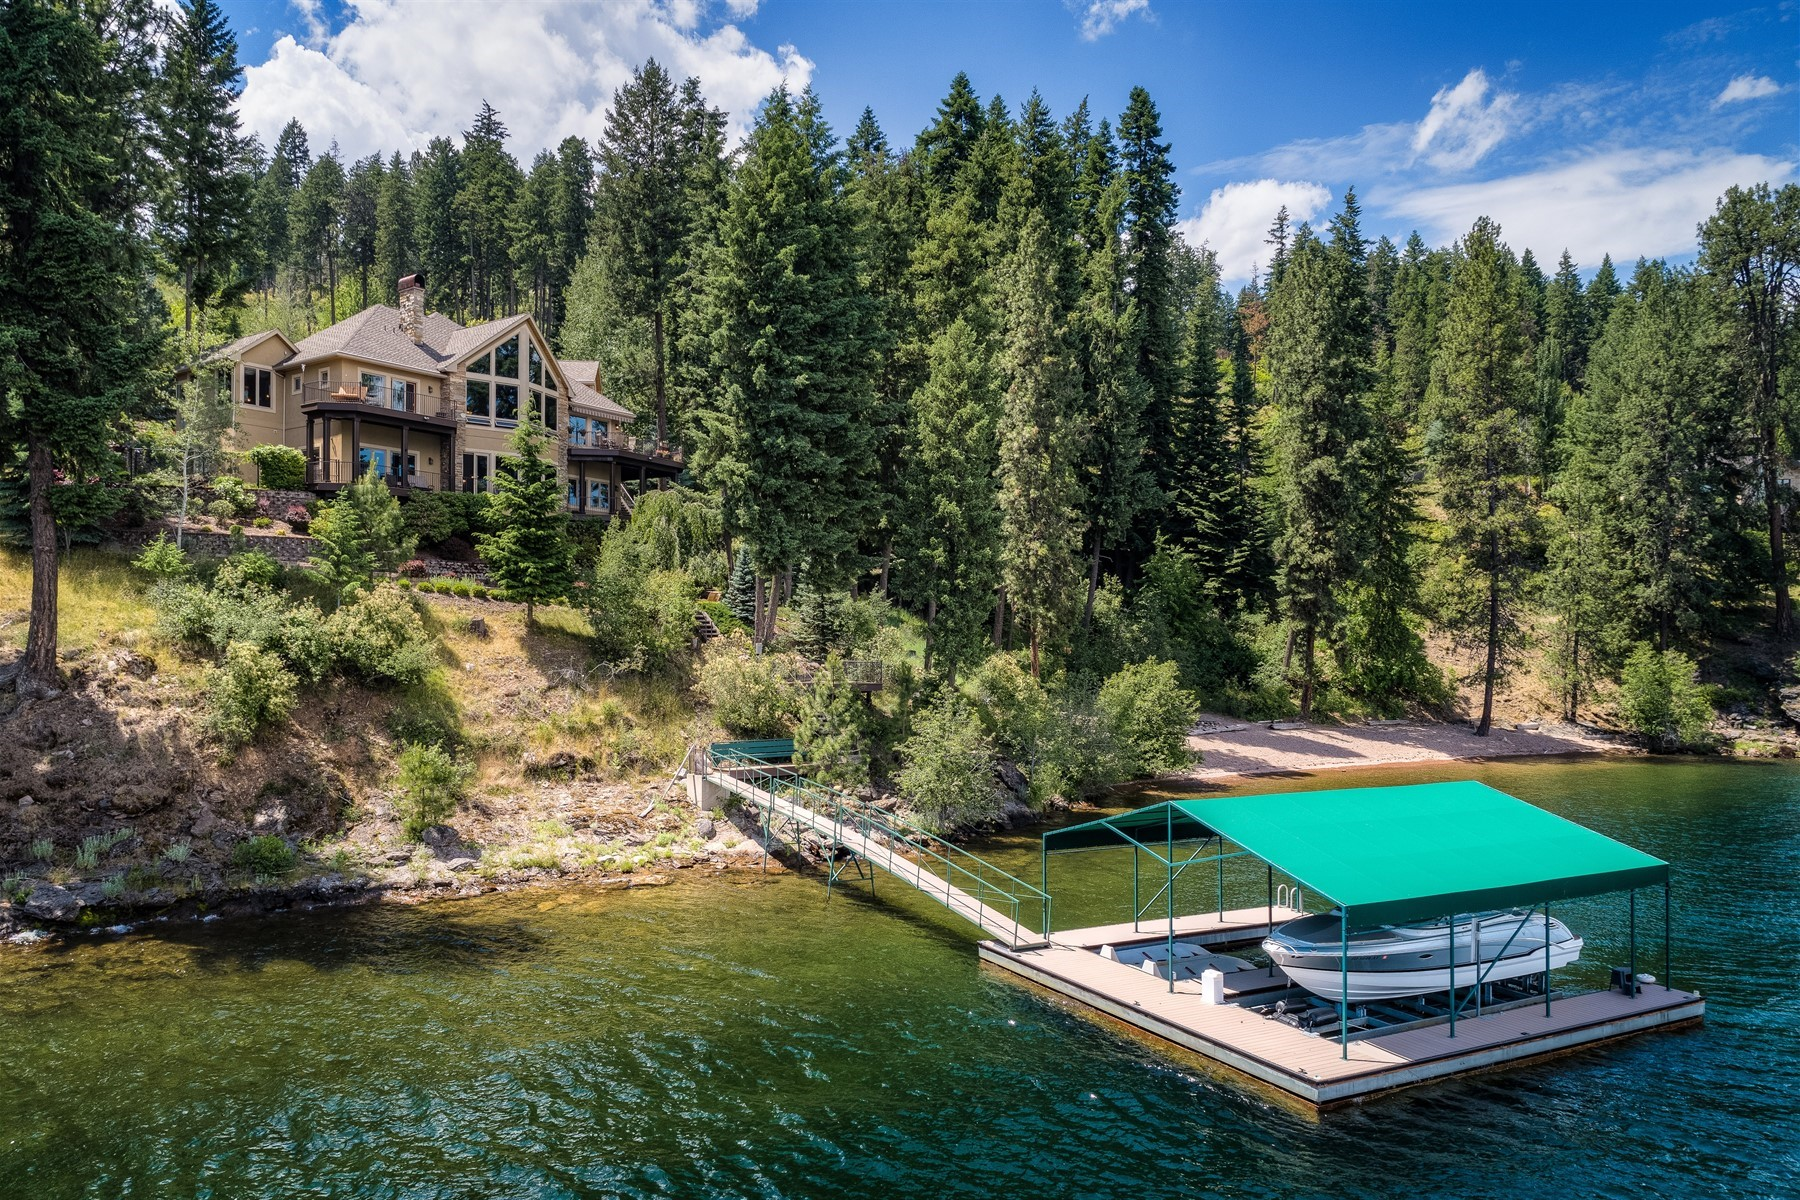 Single Family Homes for Active at CdA Lakefront Rare Beauty 4250 S Threemile Point Rd Coeur D Alene, Idaho 83814 United States